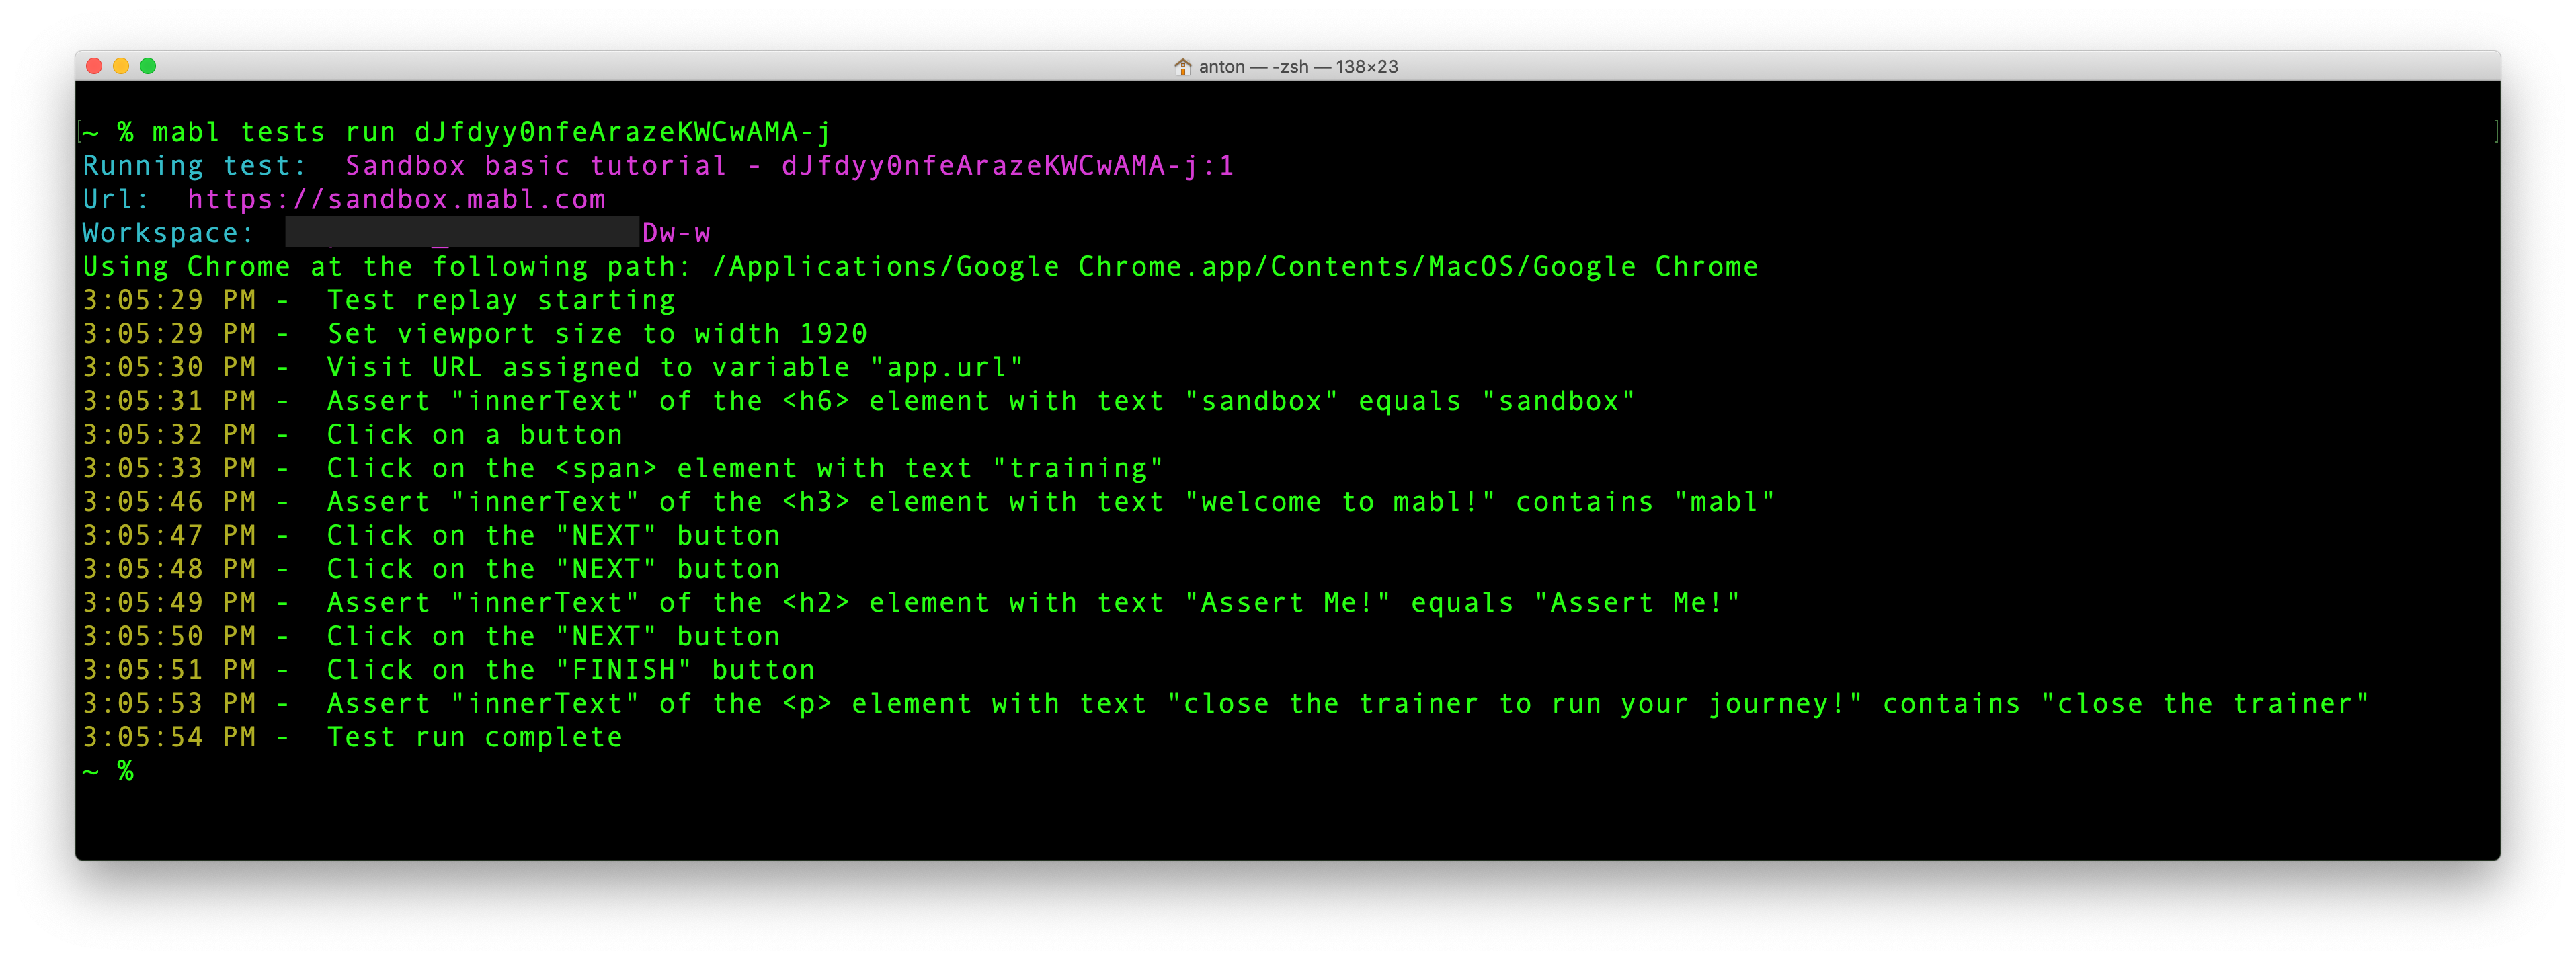 Quickly execute tests from the command line